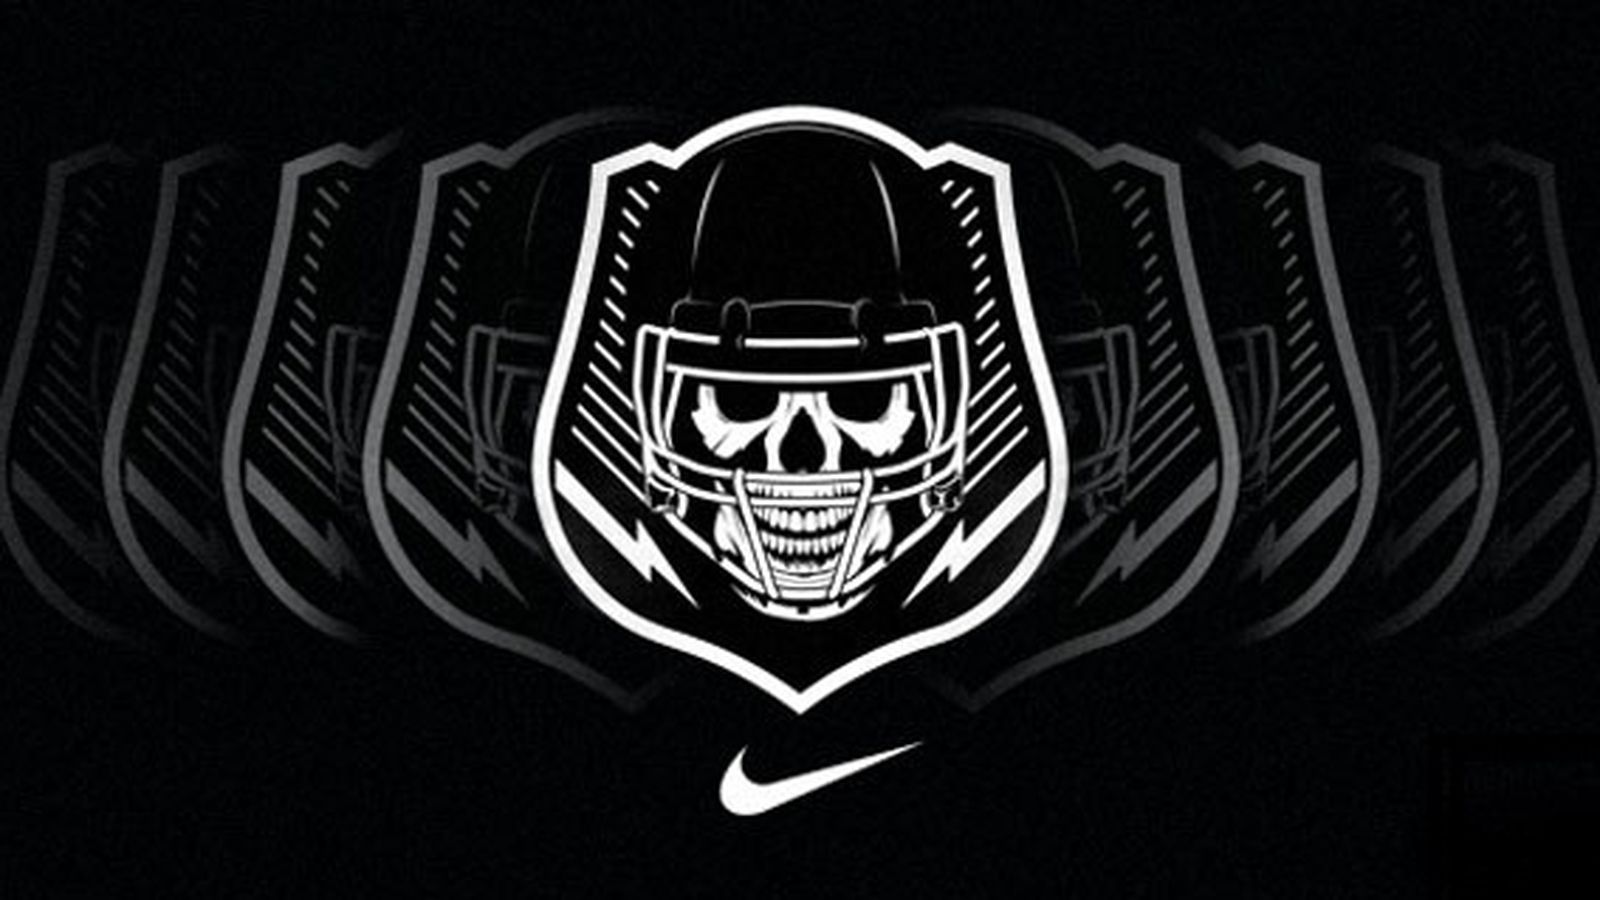 Under Armour Wallpaper Iphone X Explaining The Elite 11 And Nike S The Opening 2015 And